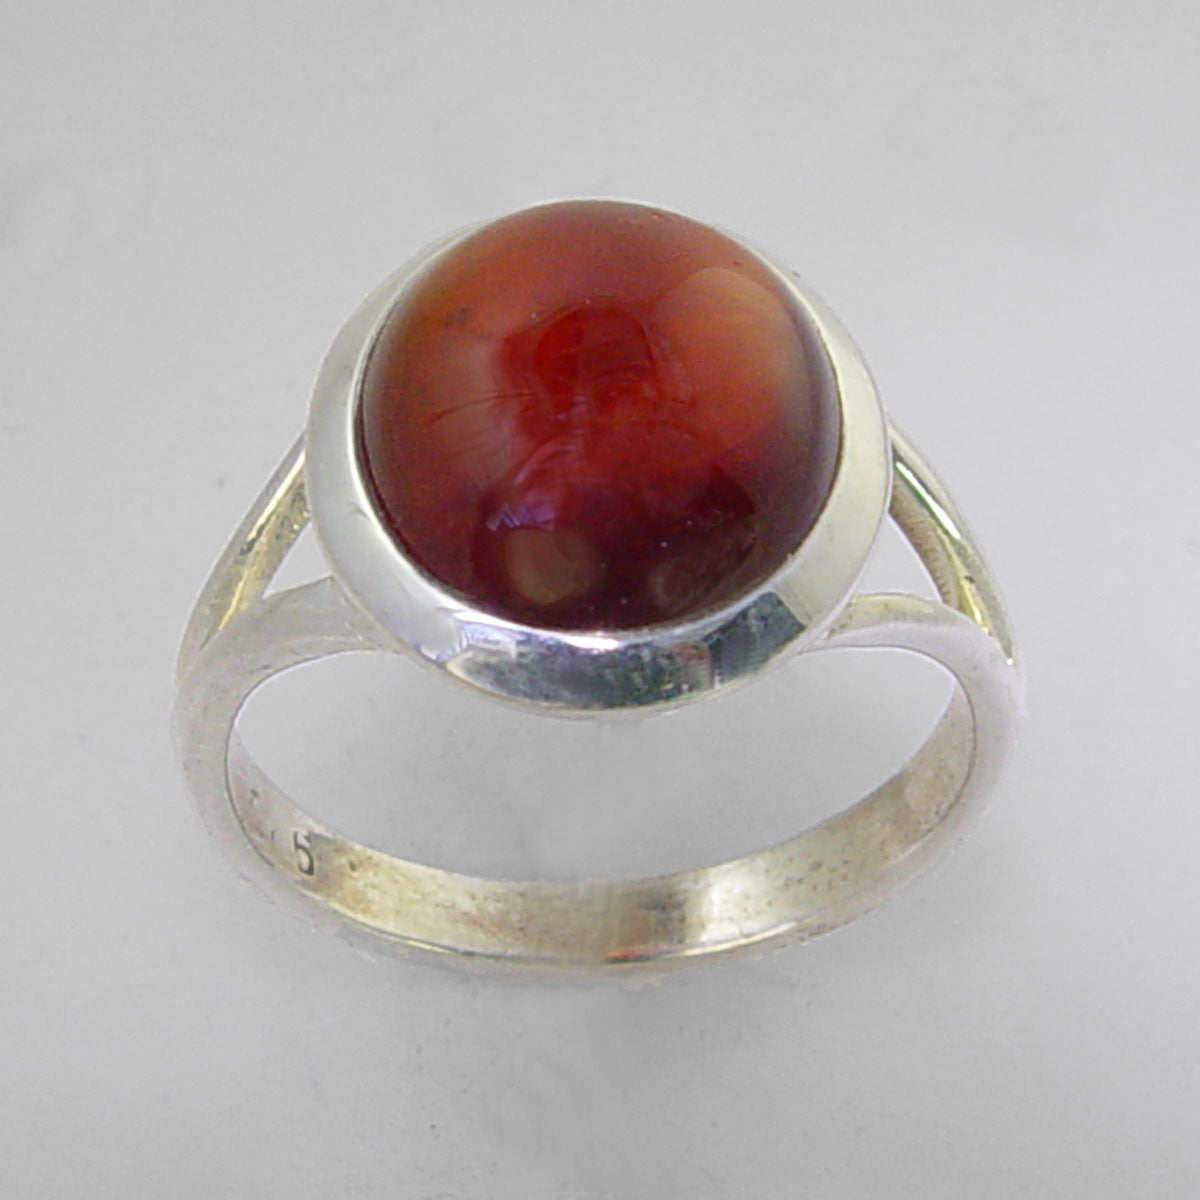 Cinnamon Hessonite Garnet 6.9 ct Oval Cab Sterling Silver Ring, Size 7